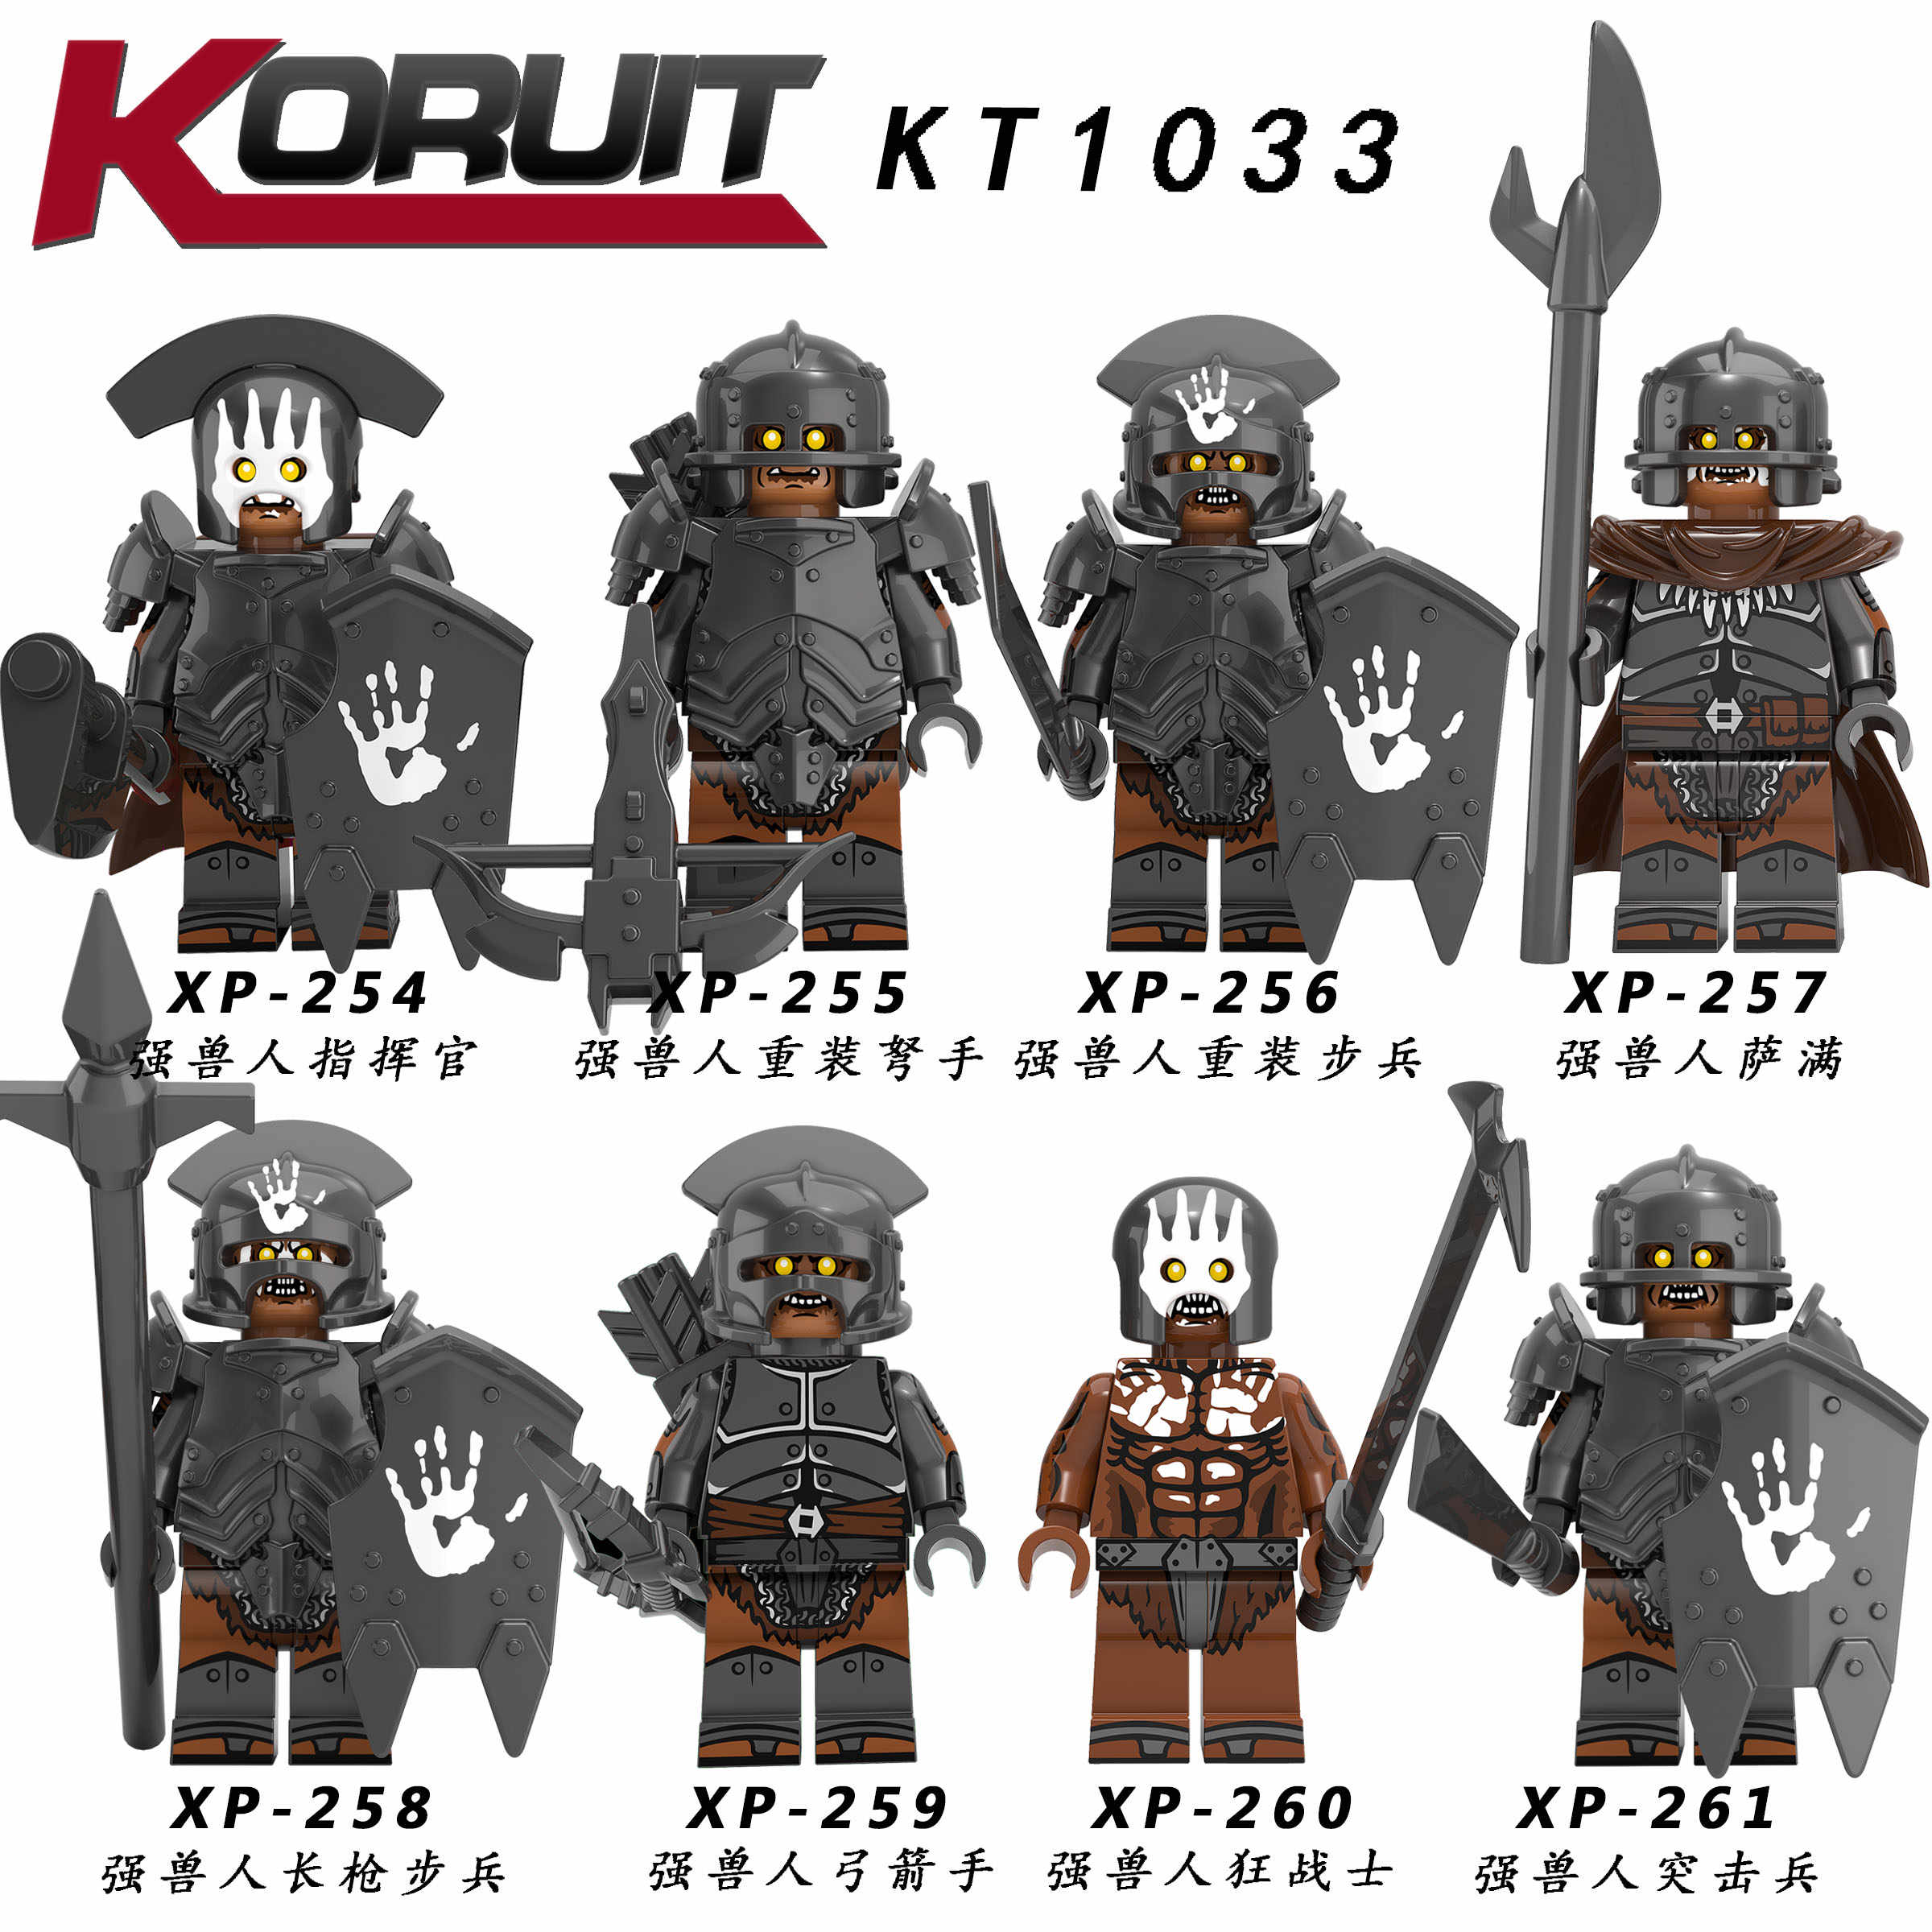 Single sell Lord of the Rings Action FigureStrong orc  Soldier   Heavy Infantry Spear Building Blocks Toys forodels Toys KT1033